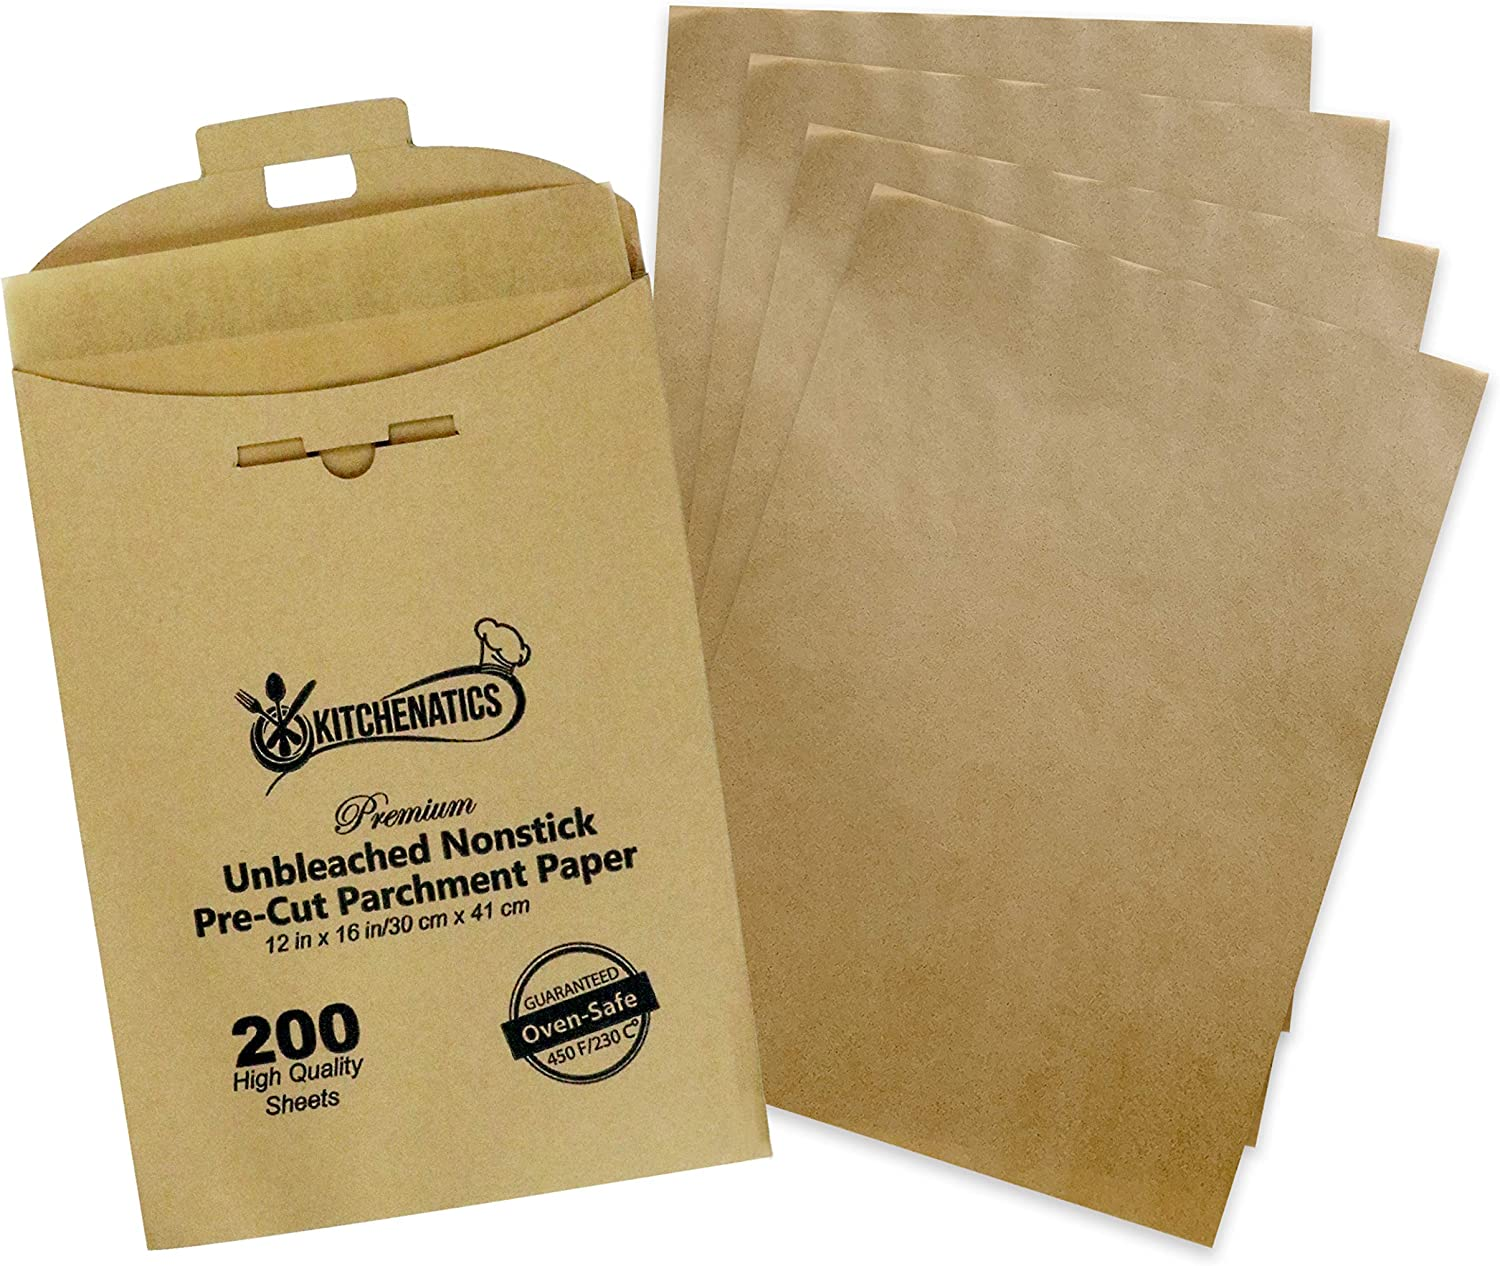 KITCHENATICS Unbleached Non Stick Parchment Paper, Half-Sheet, Non-Perforated Cooking Sheet Liners For Baking Pan, Air Fryer, Steamer, Oven or Grill, Brown Wax-Free Liner, 12